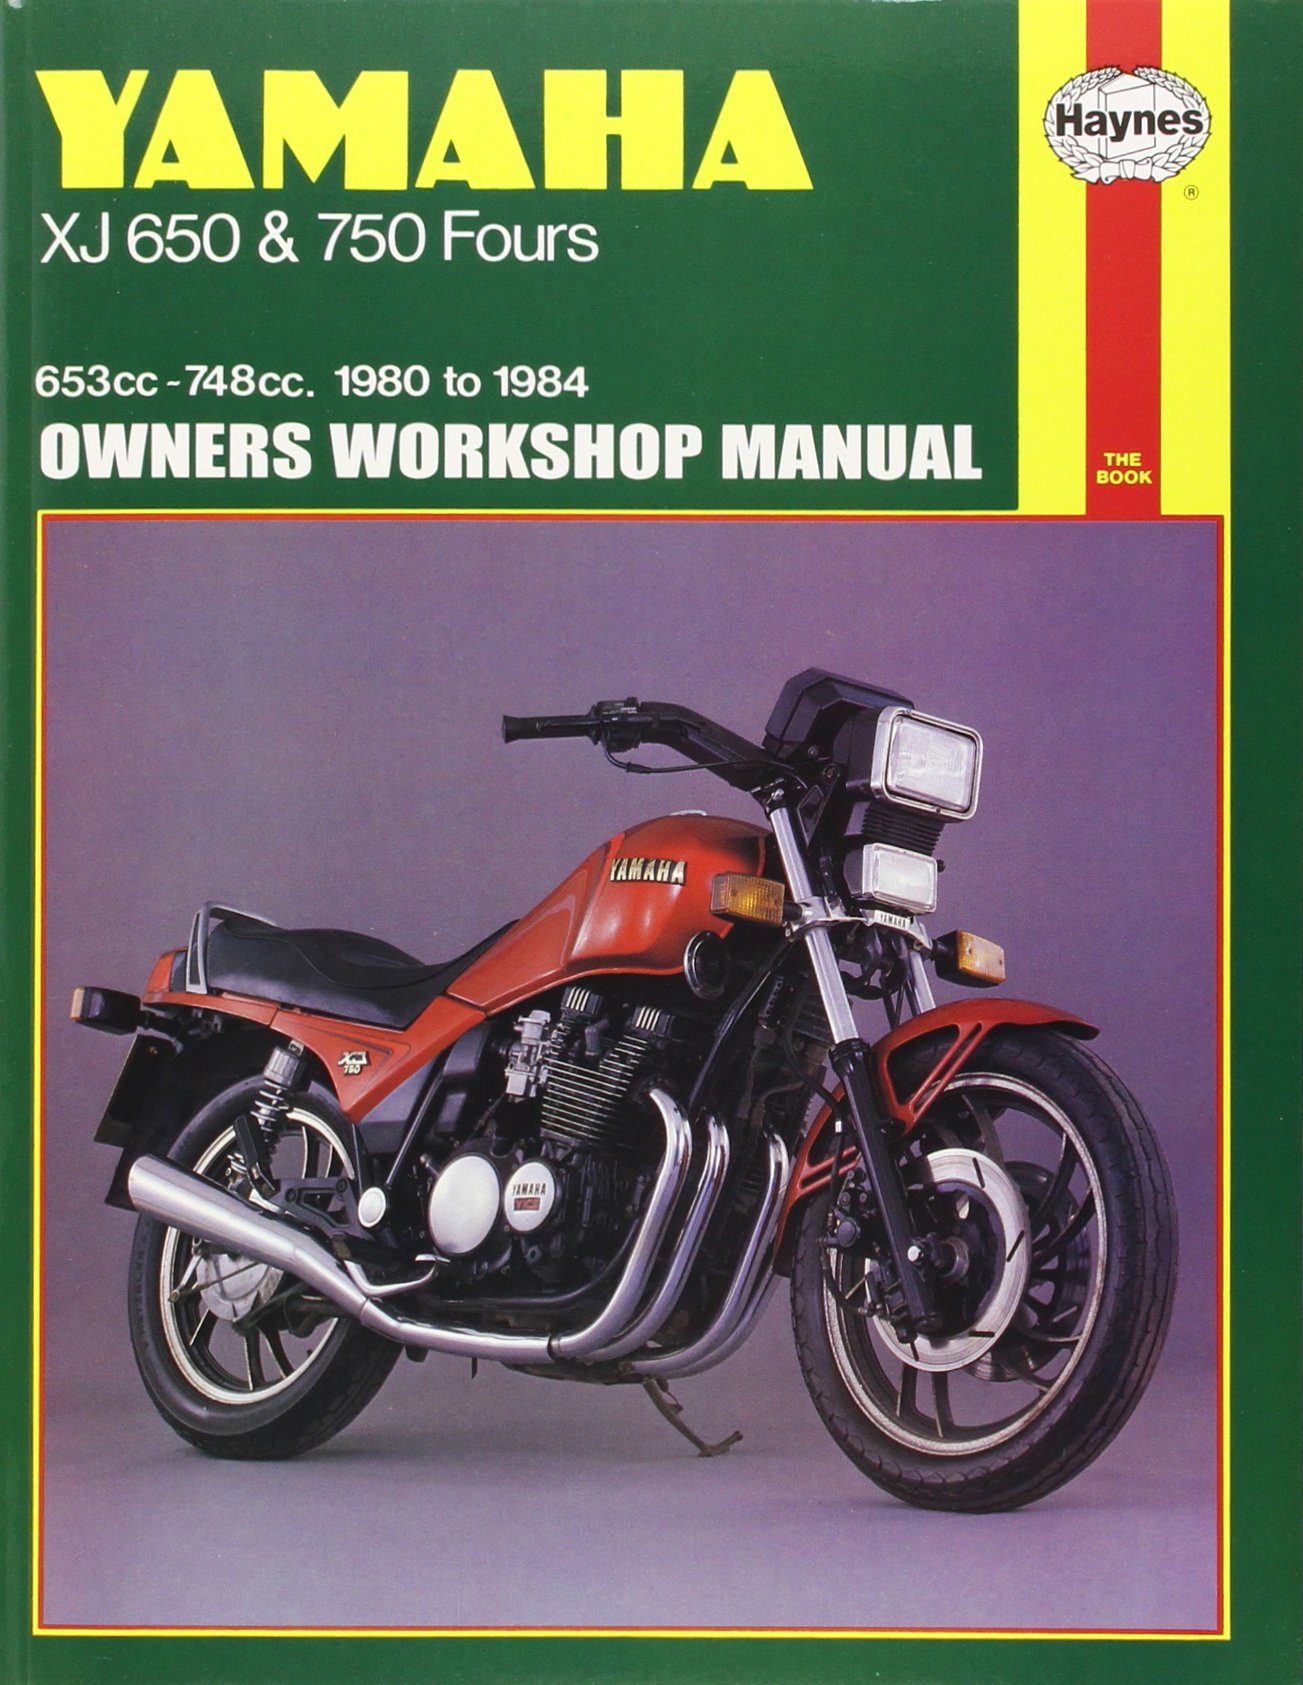 Yamaha Xj 650 And 750 Fours Owners Workshop Manual No M738 80 Wiring Diagram 84 John Haynes 9781850103530 Books